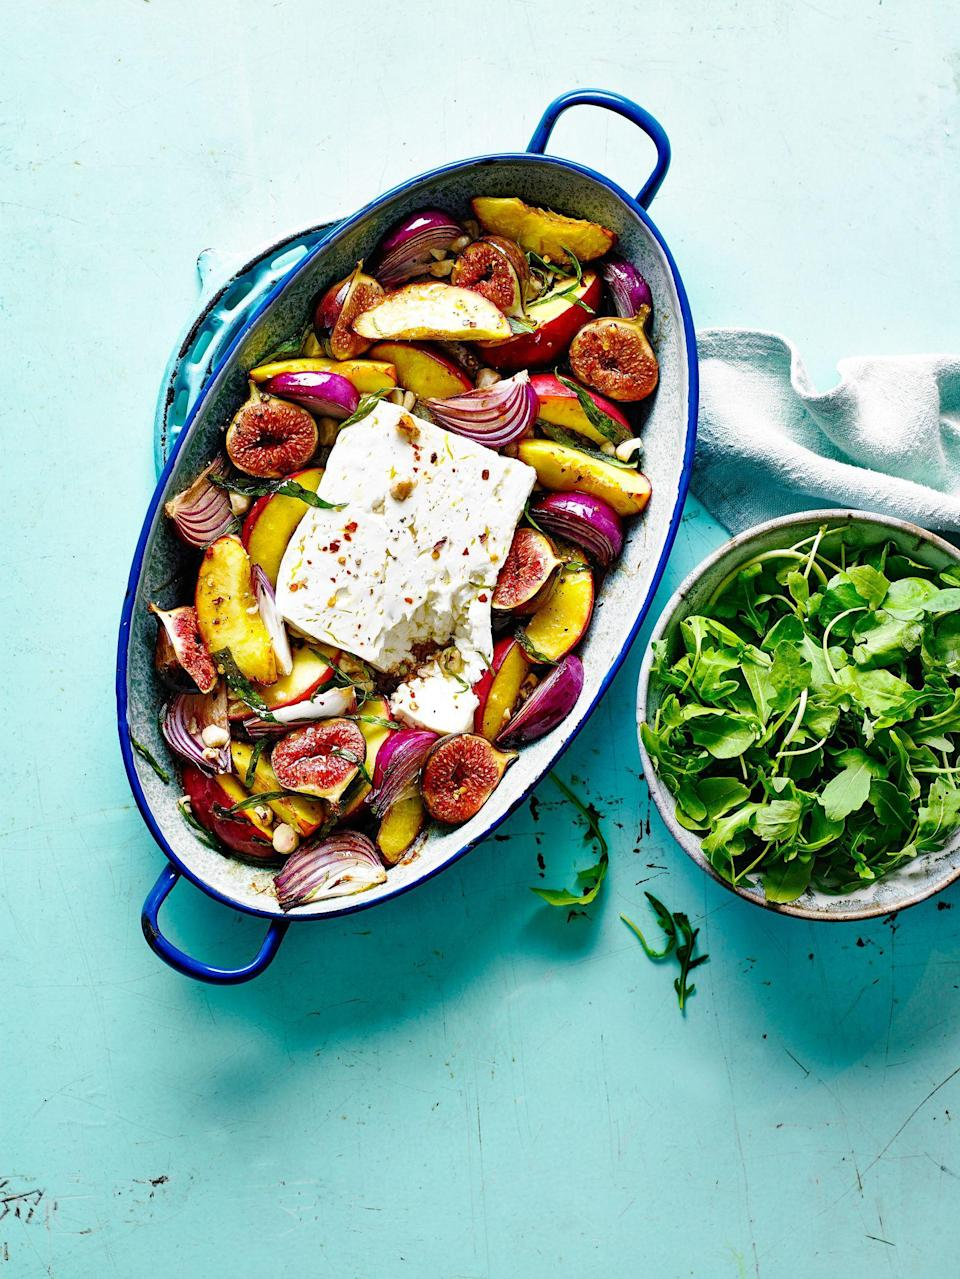 """<p>Feta is having a moment thanks to social media and a viral recipe for baked feta pasta - a super simple dish of cherry tomatoes, <a href=""""https://www.goodhousekeeping.com/uk/food/recipes/g538739/best-pasta-recipes/"""" rel=""""nofollow noopener"""" target=""""_blank"""" data-ylk=""""slk:pasta"""" class=""""link rapid-noclick-resp"""">pasta</a> and salty feta, all mixed together. It's so simple, anyone can make it.</p><p>And that's the great thing about feta. It's a really versatile ingredient and can make an excellent addition to a <a href=""""https://www.goodhousekeeping.com/uk/food/recipes/a535481/vegetable-frittata-535481/"""" rel=""""nofollow noopener"""" target=""""_blank"""" data-ylk=""""slk:frittata"""" class=""""link rapid-noclick-resp"""">frittata</a>, elevate a warming bowl of couscous and is even wonderful just crumbled over fresh <a href=""""https://www.goodhousekeeping.com/uk/food/recipes/g567268/salad-recipes/"""" rel=""""nofollow noopener"""" target=""""_blank"""" data-ylk=""""slk:salad leaves"""" class=""""link rapid-noclick-resp"""">salad leaves</a> with a drizzle of olive oil.</p><p>You can even make a summery <a href=""""https://www.goodhousekeeping.com/uk/food/cookery-videos/a657281/how-to-roast-a-chicken/"""" rel=""""nofollow noopener"""" target=""""_blank"""" data-ylk=""""slk:roast chicken"""" class=""""link rapid-noclick-resp"""">roast chicken</a> with the addition of feta, olives and oregano. Delicious.</p>"""